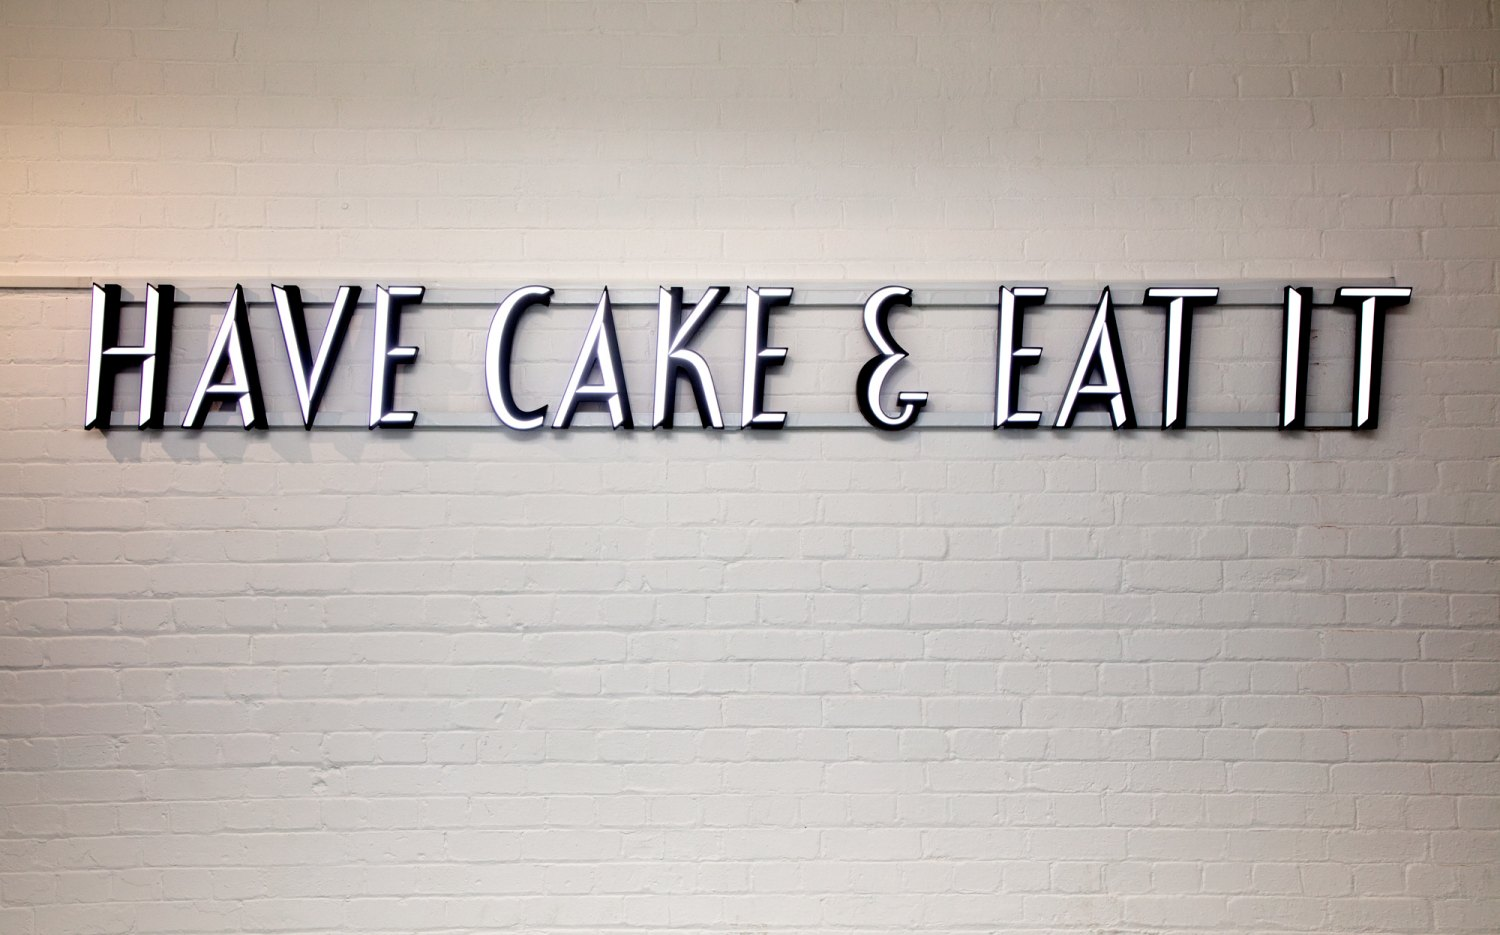 Claire Fontaine Untitled (Have cake & eat it), 2017 LED 3d 2 tone lettering with support, 33 x 302.5 x 6 cm